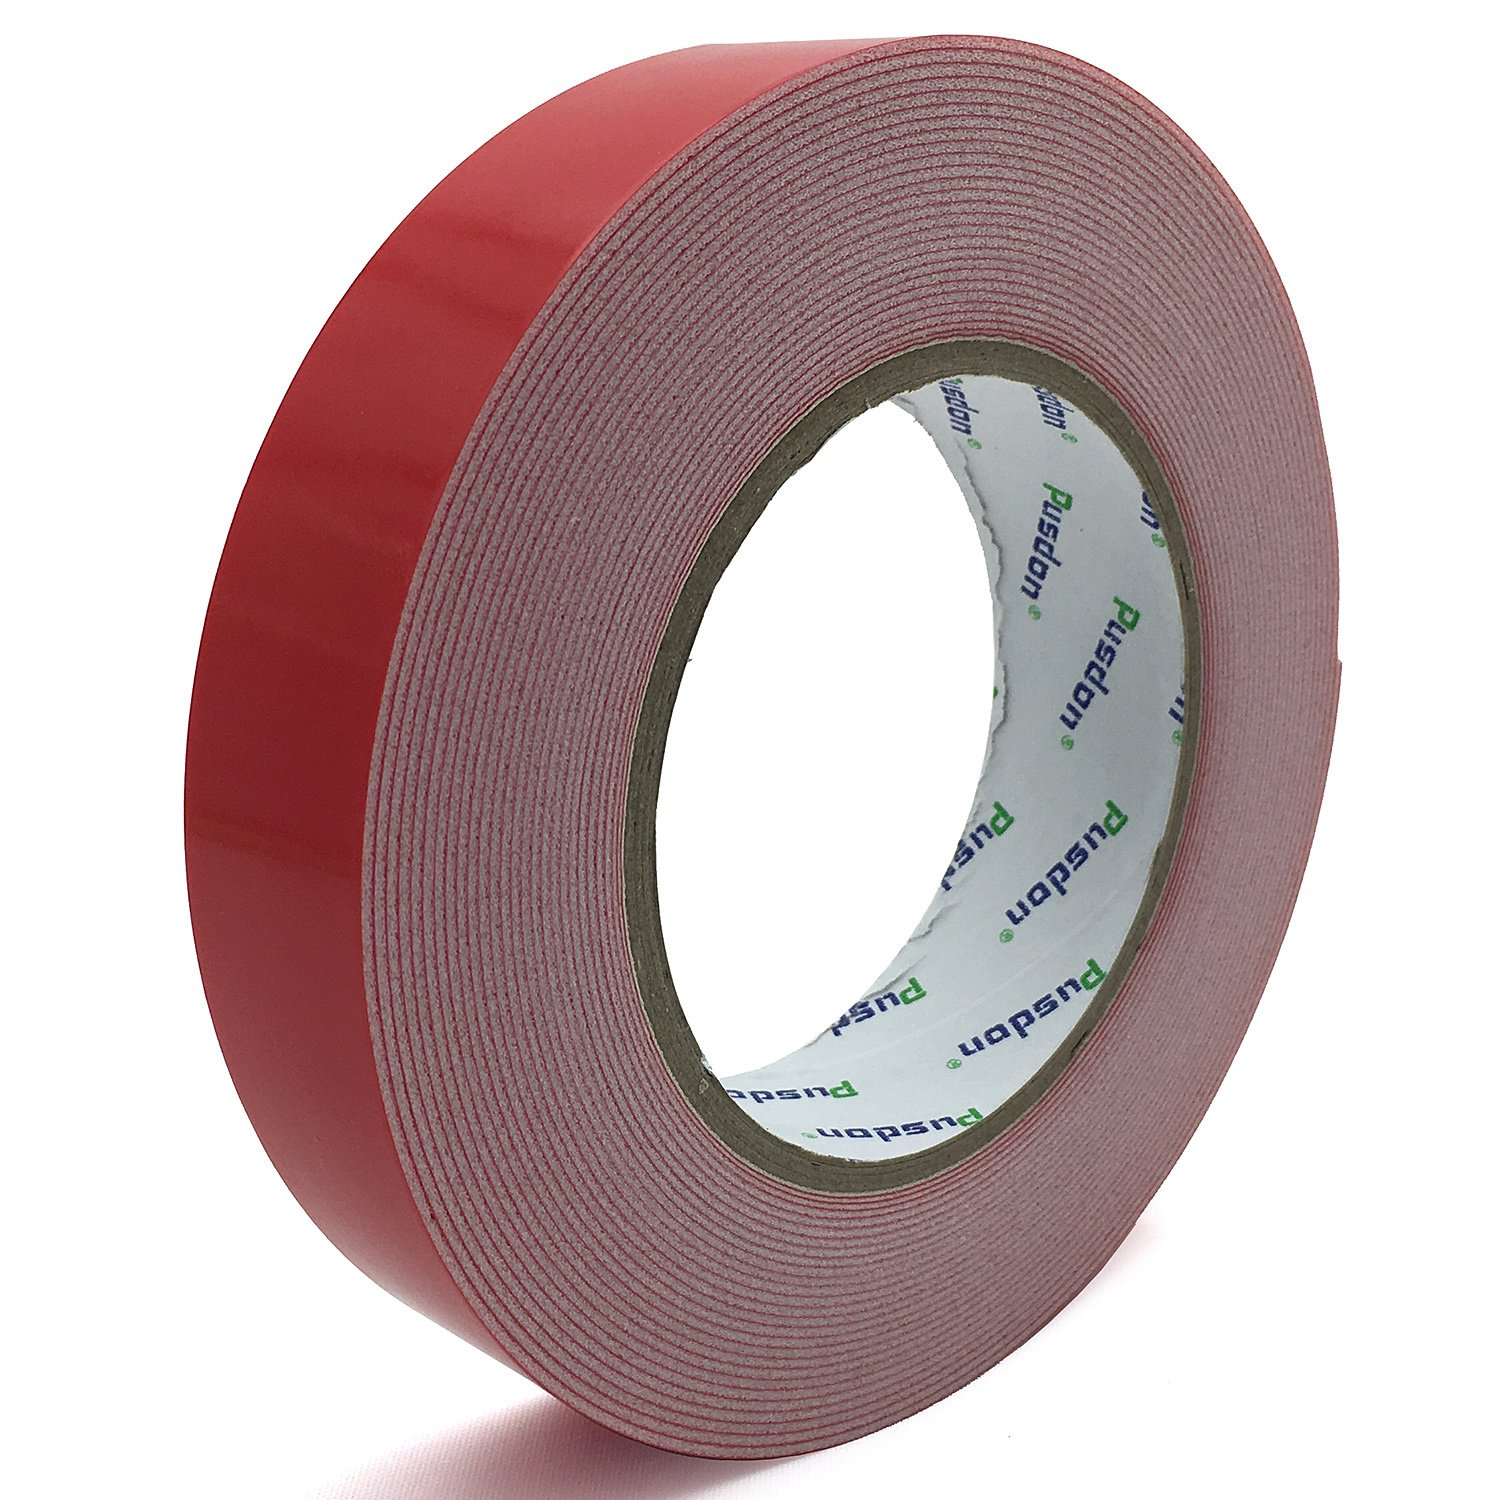 Pusdon Mounting Tape, Double Sided Foam Tape, 1-Inch x 10 Yards (25.5mm x 9.15m), Removable Weight Holding Capacity Tape